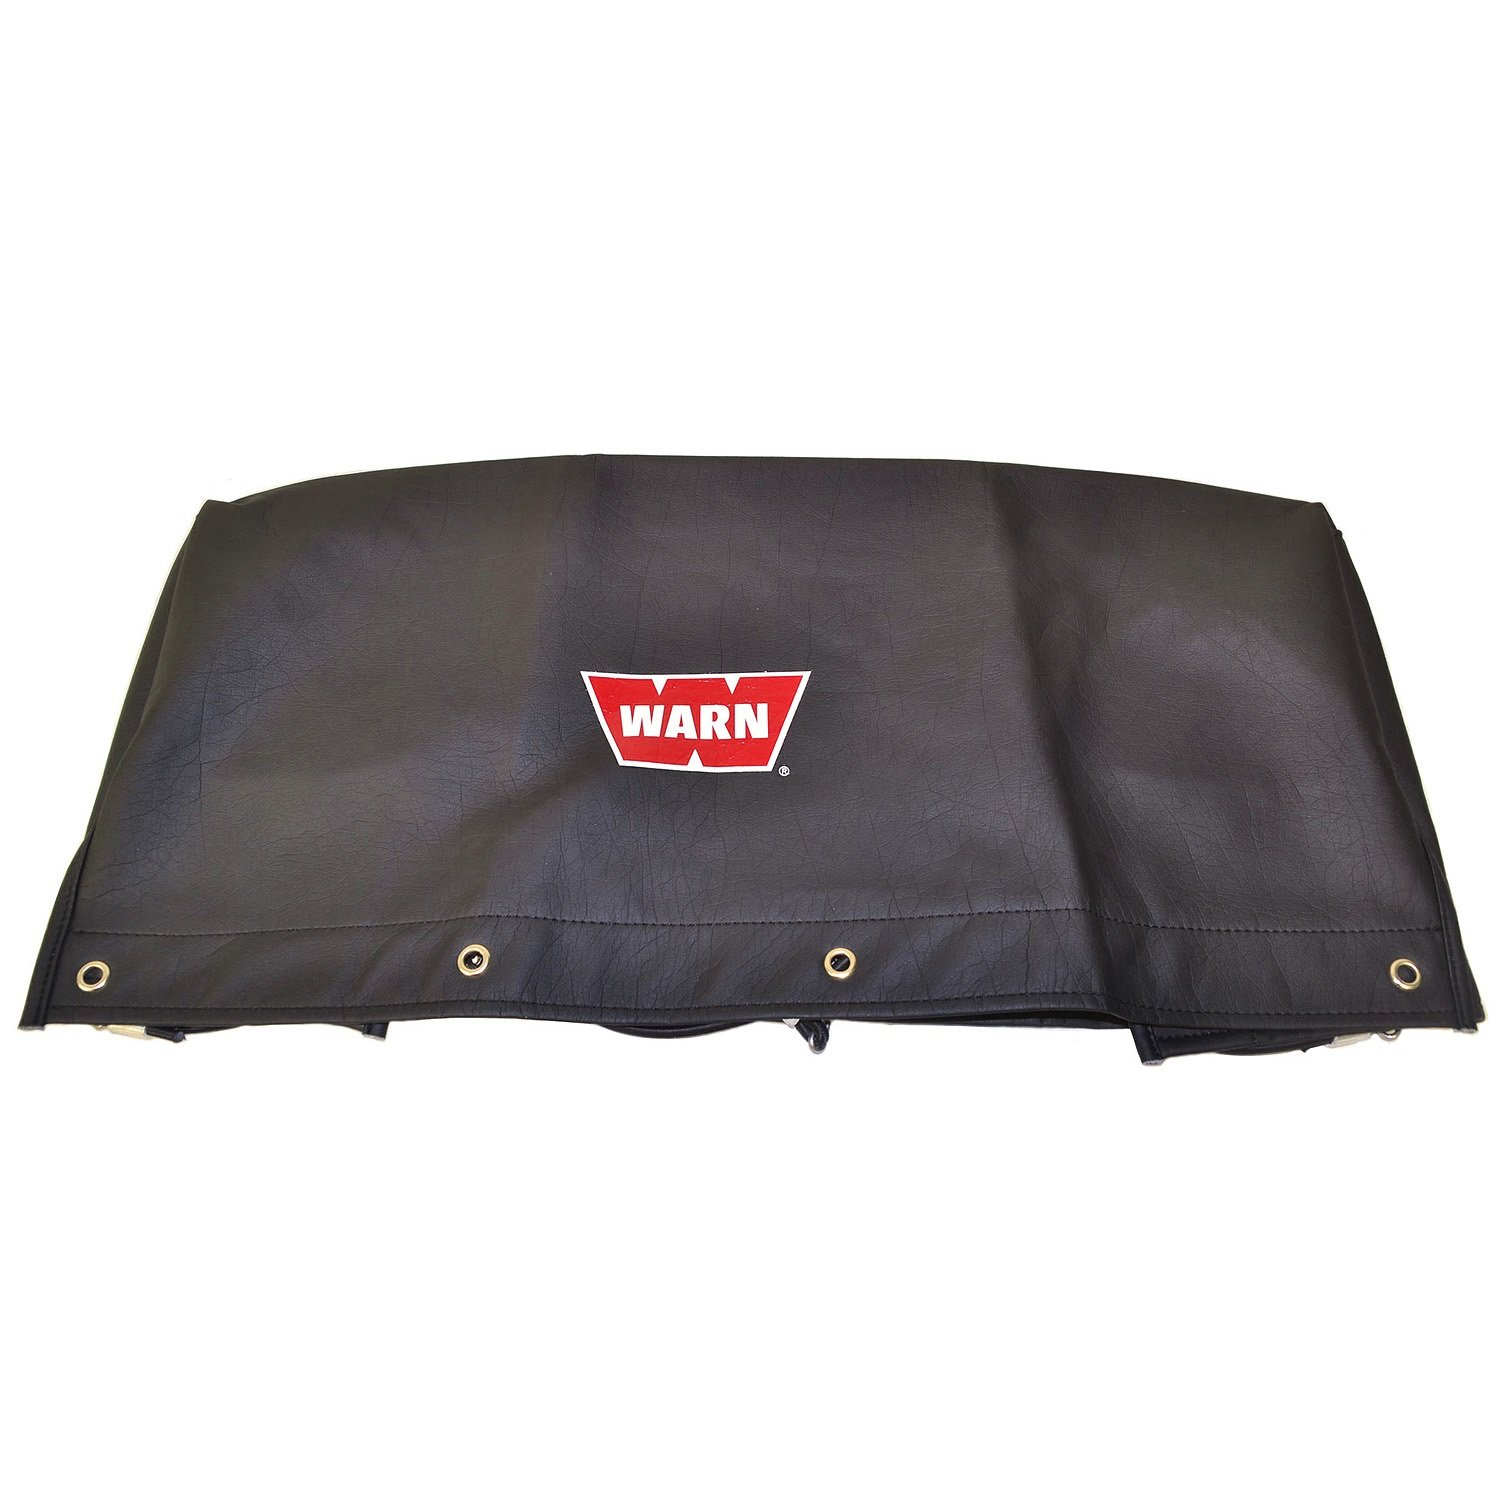 WARN 15639 Soft Winch Cover